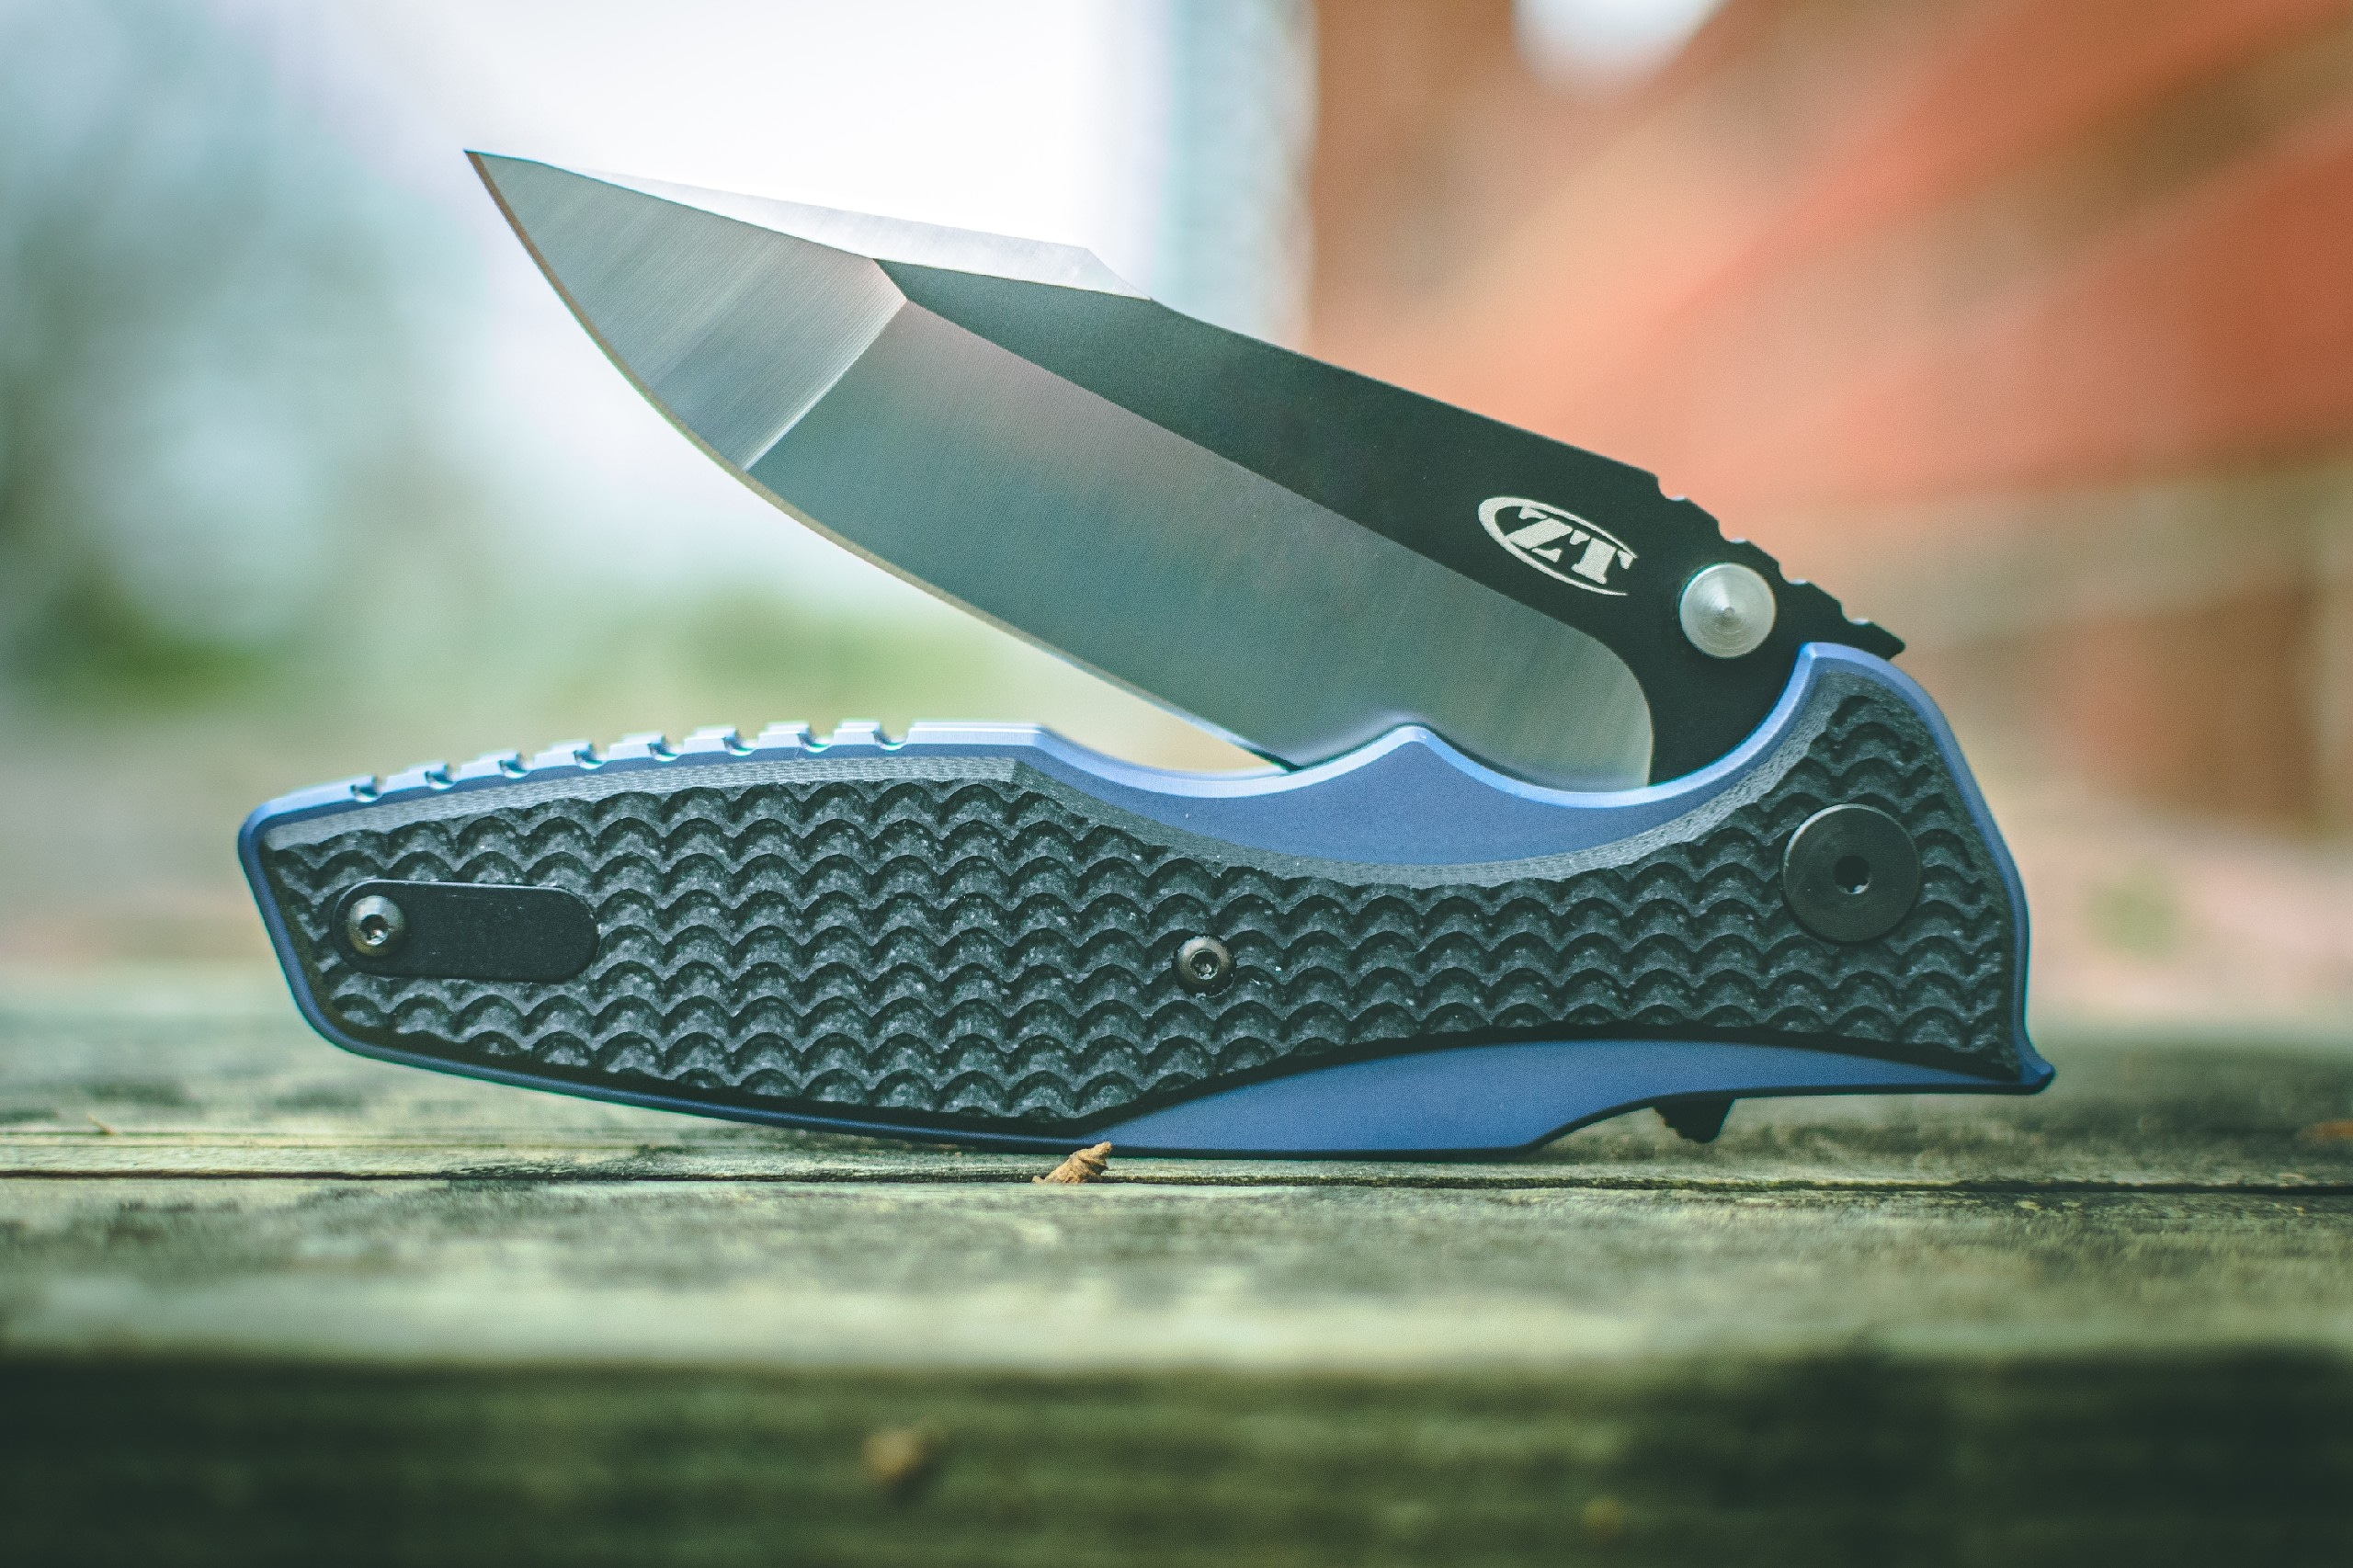 edgeworks, Author at Edgeworks Knife and Supply Co